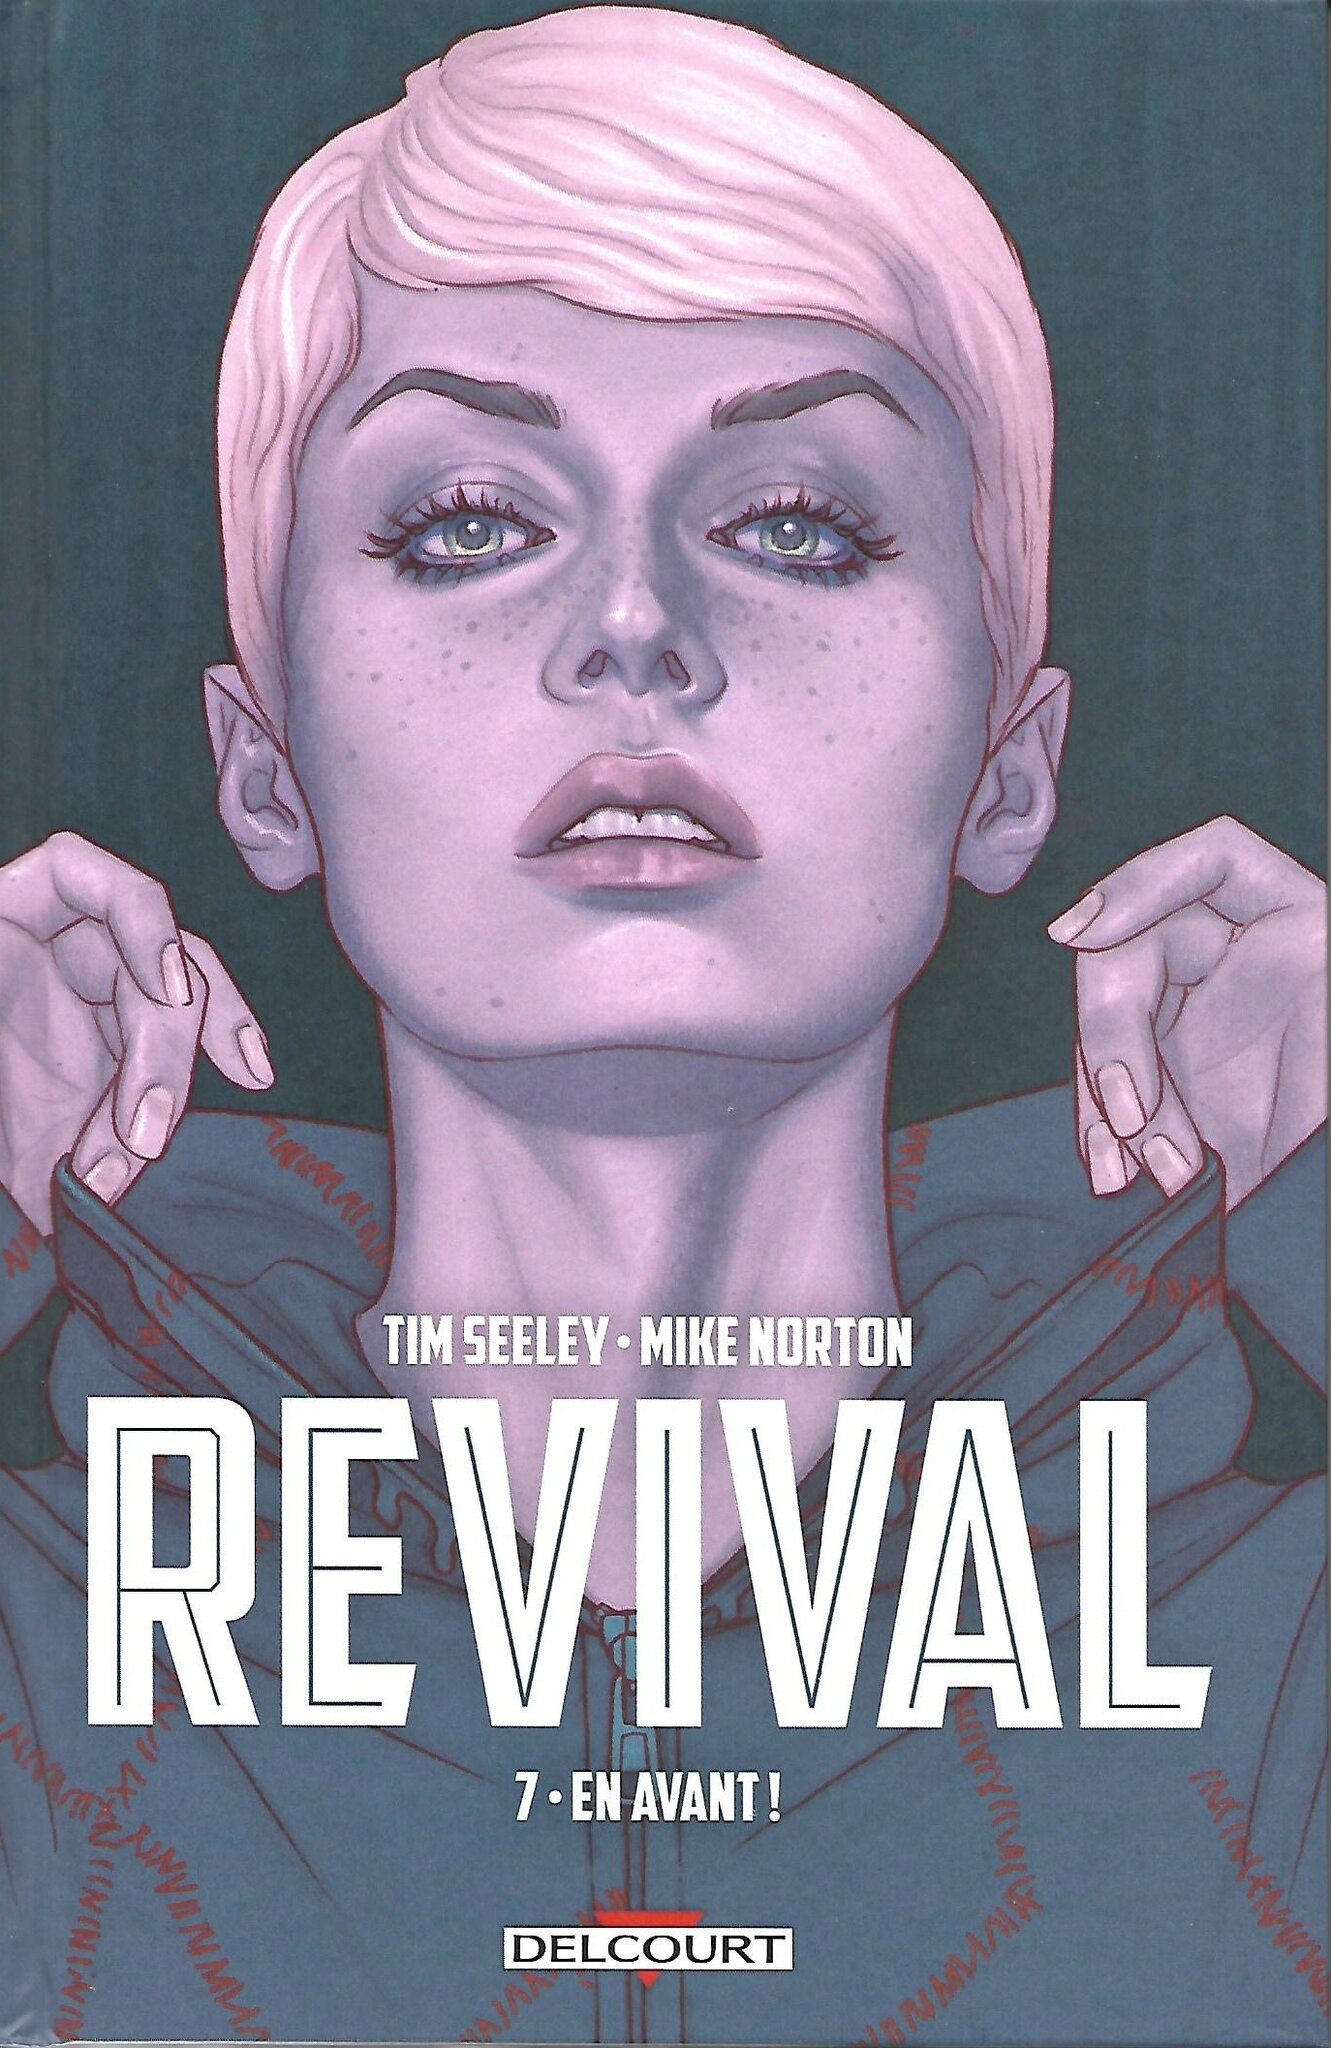 REVIVAL - L'intégrale - Volume 7: En avant! - par Tim Seeley et Mike Norton